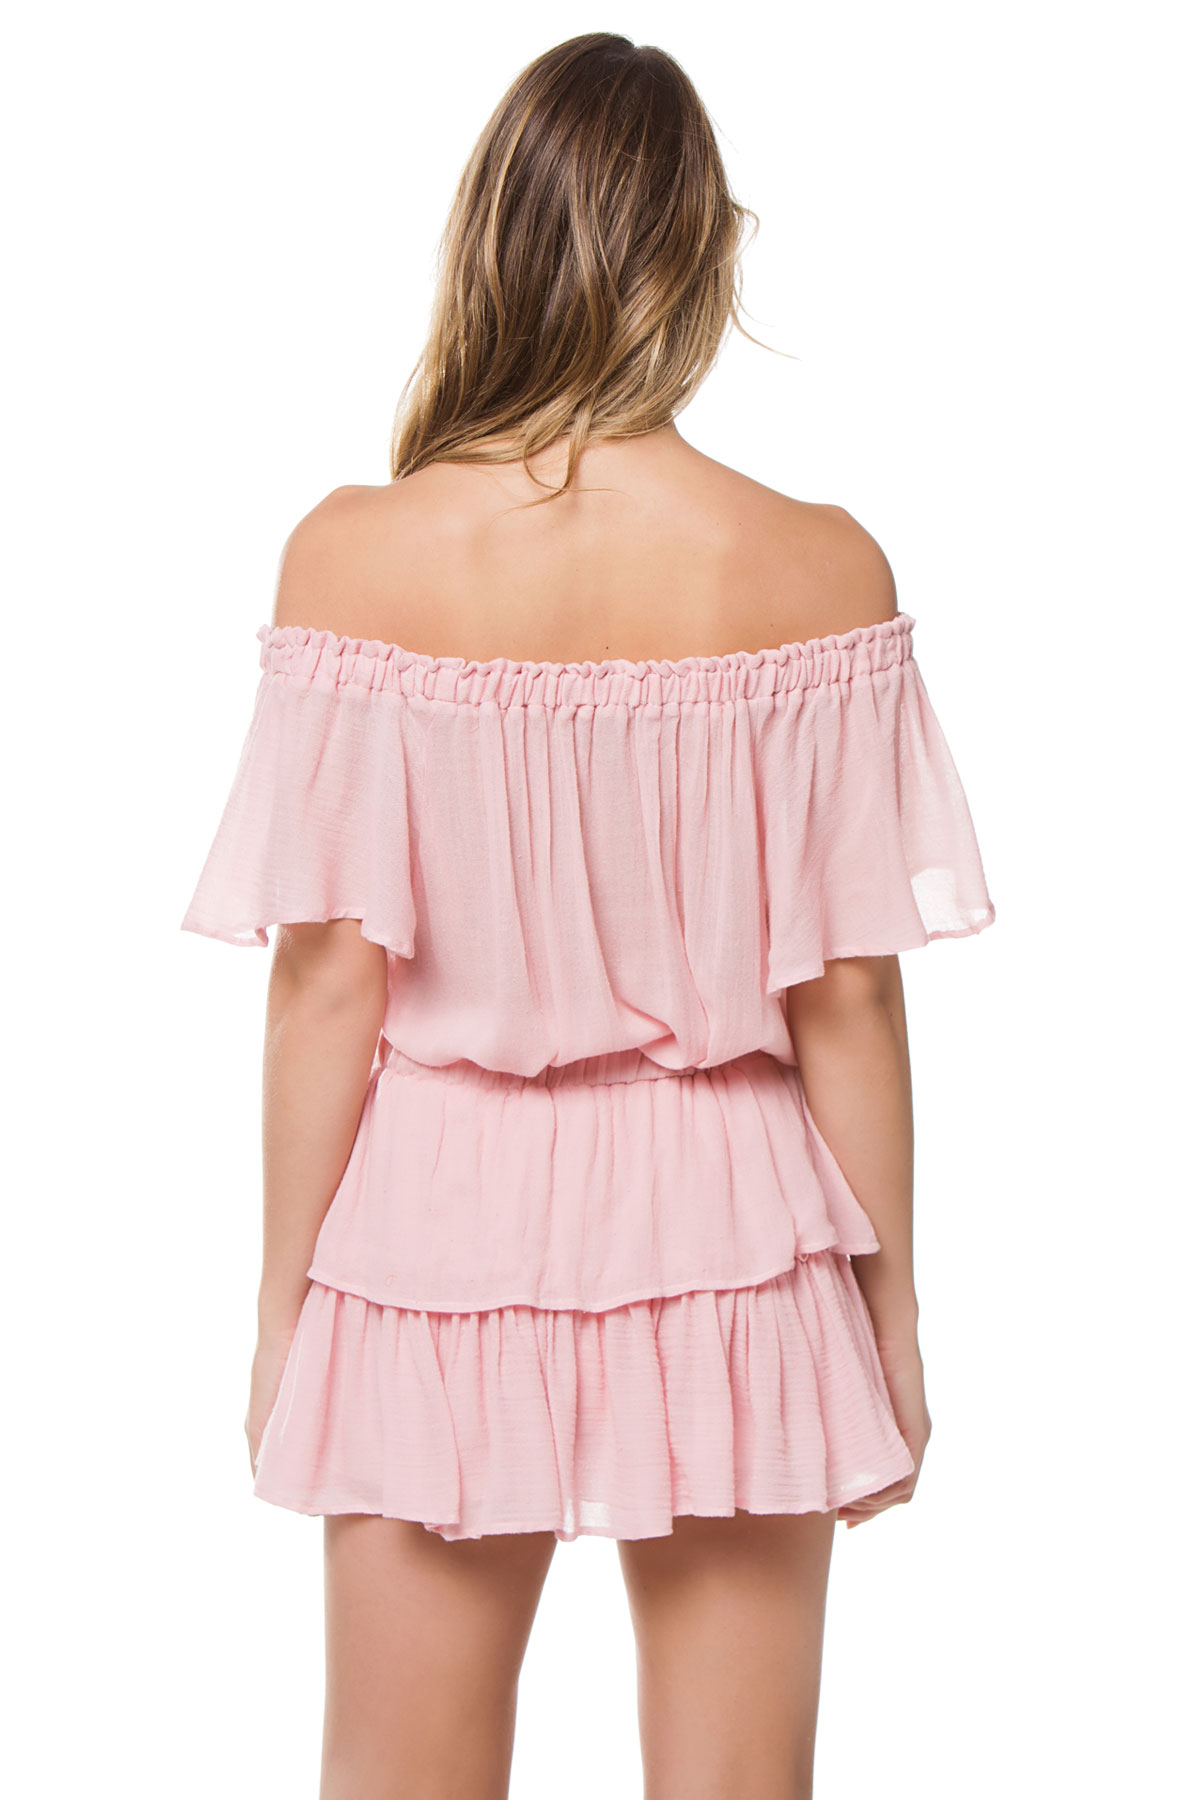 Off The Shoulder Blouse - Silver Pink 2